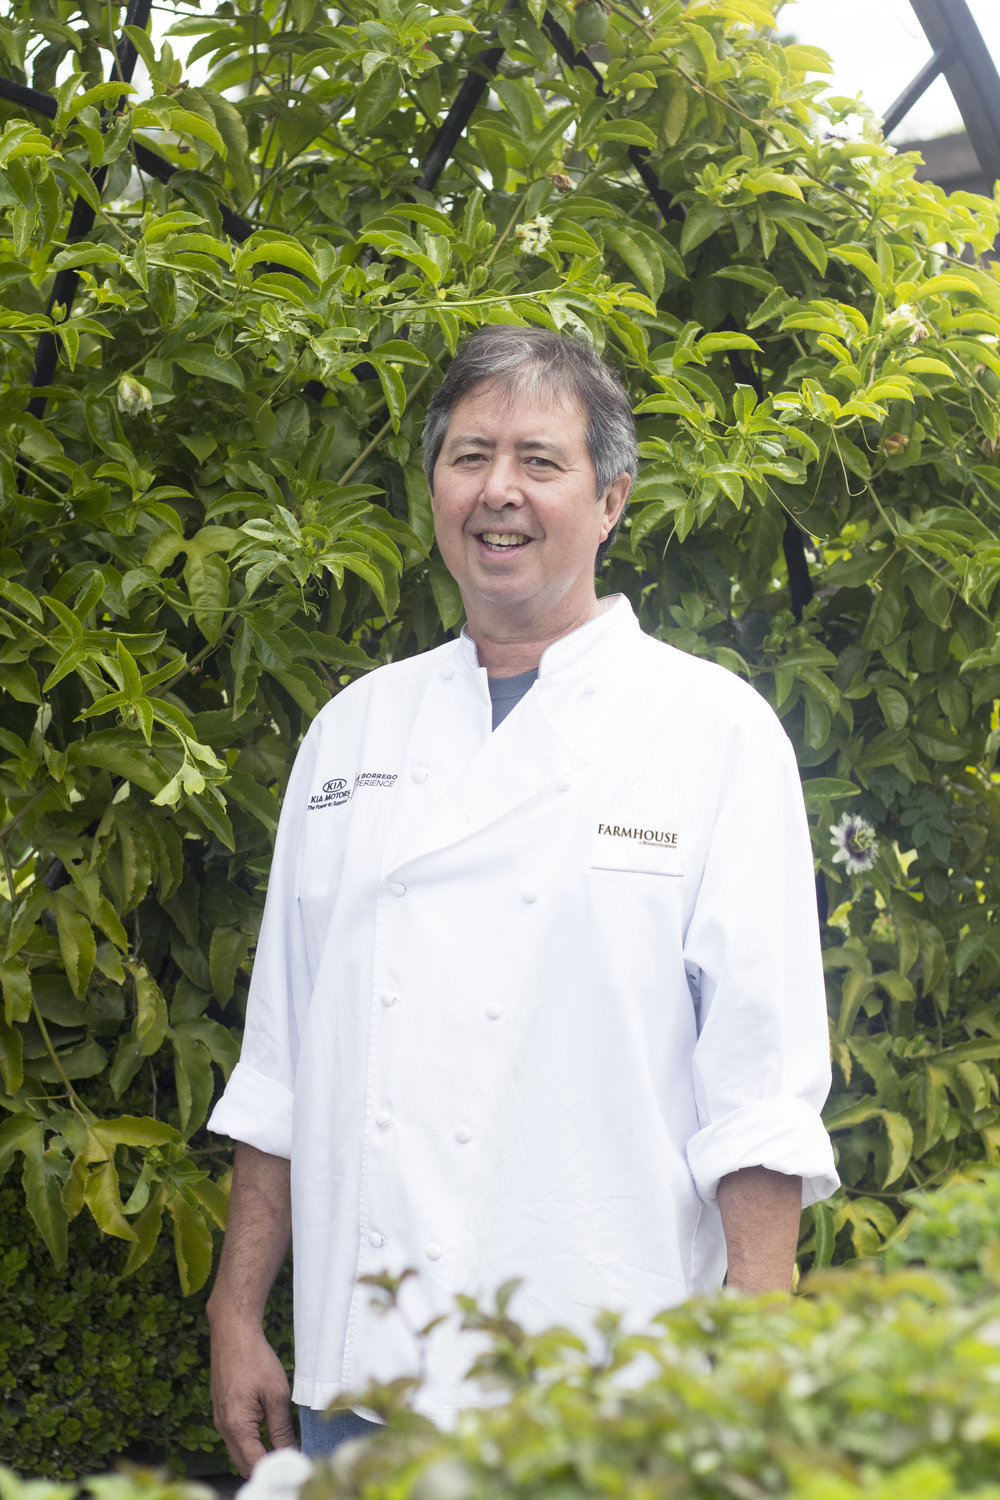 Chef Rich Mead